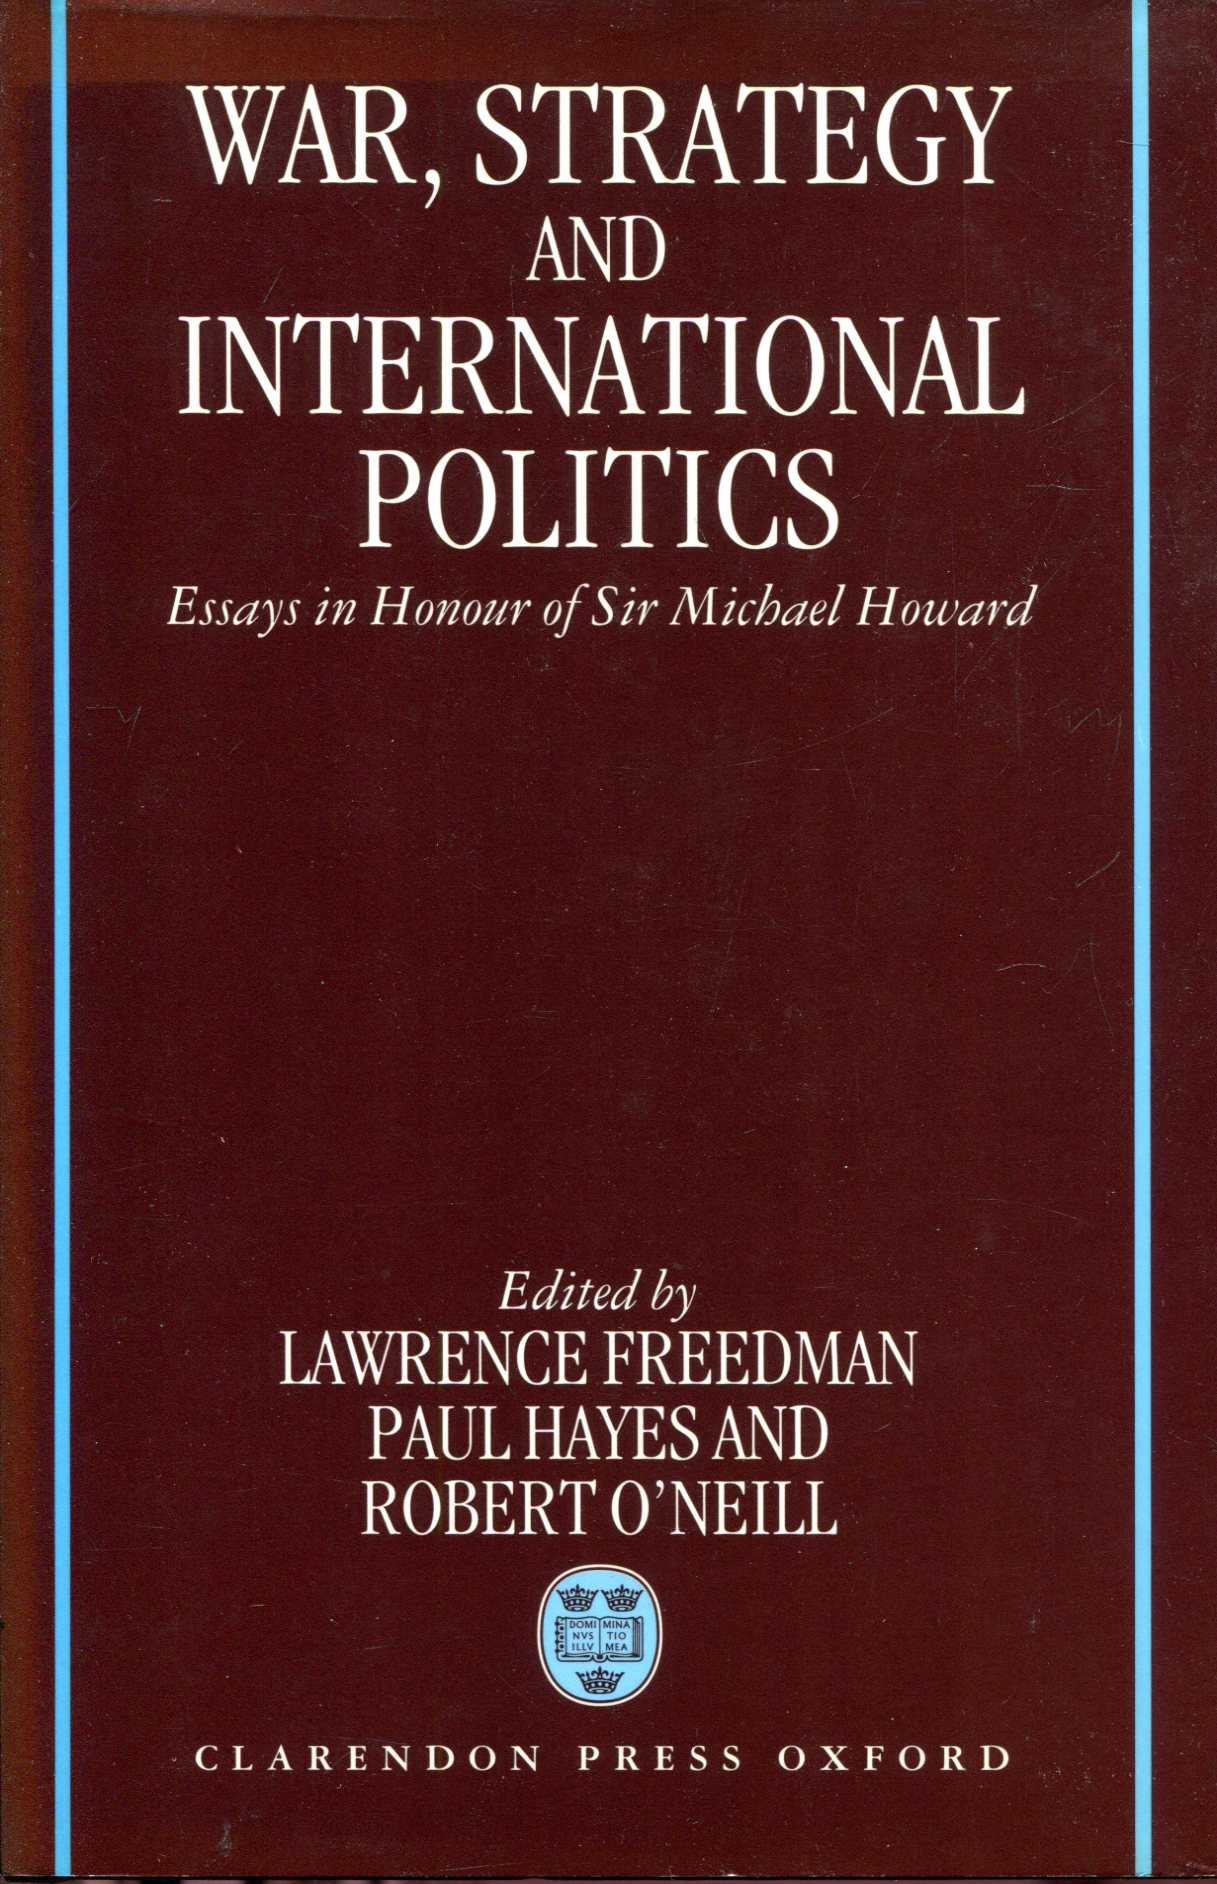 Image for War, Strategy, and International Politics : Essays in Honour of Sir Michael Howard